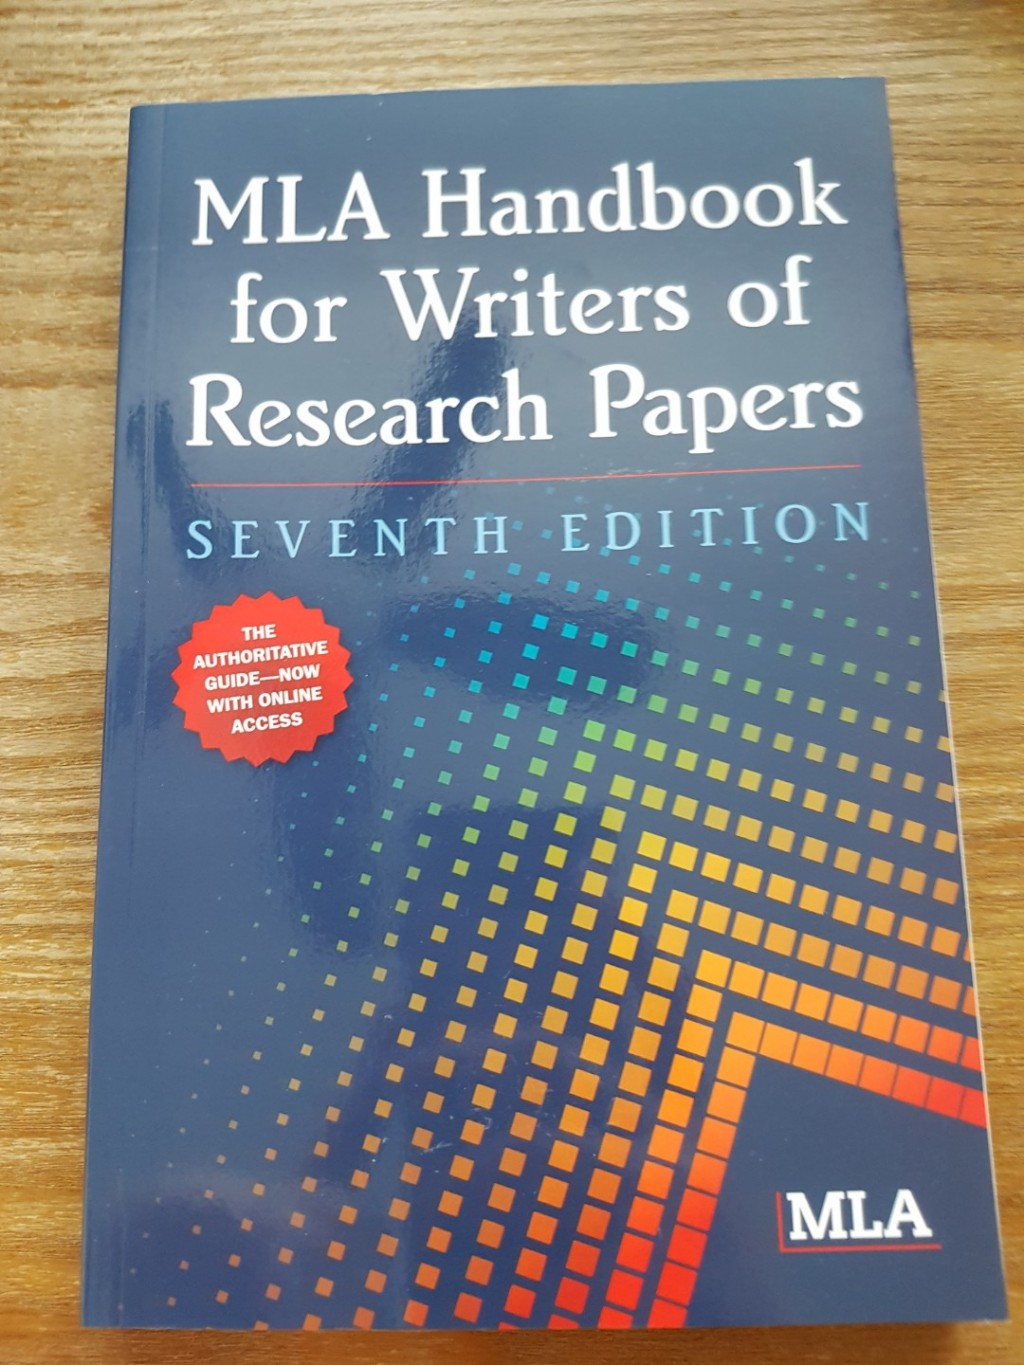 003 Bn Mla Handbook For Writers Of Research Papers 7th 1526886966 Db26cb23 Paper Fearsome Edition Pdf Free 2009 Summary Large